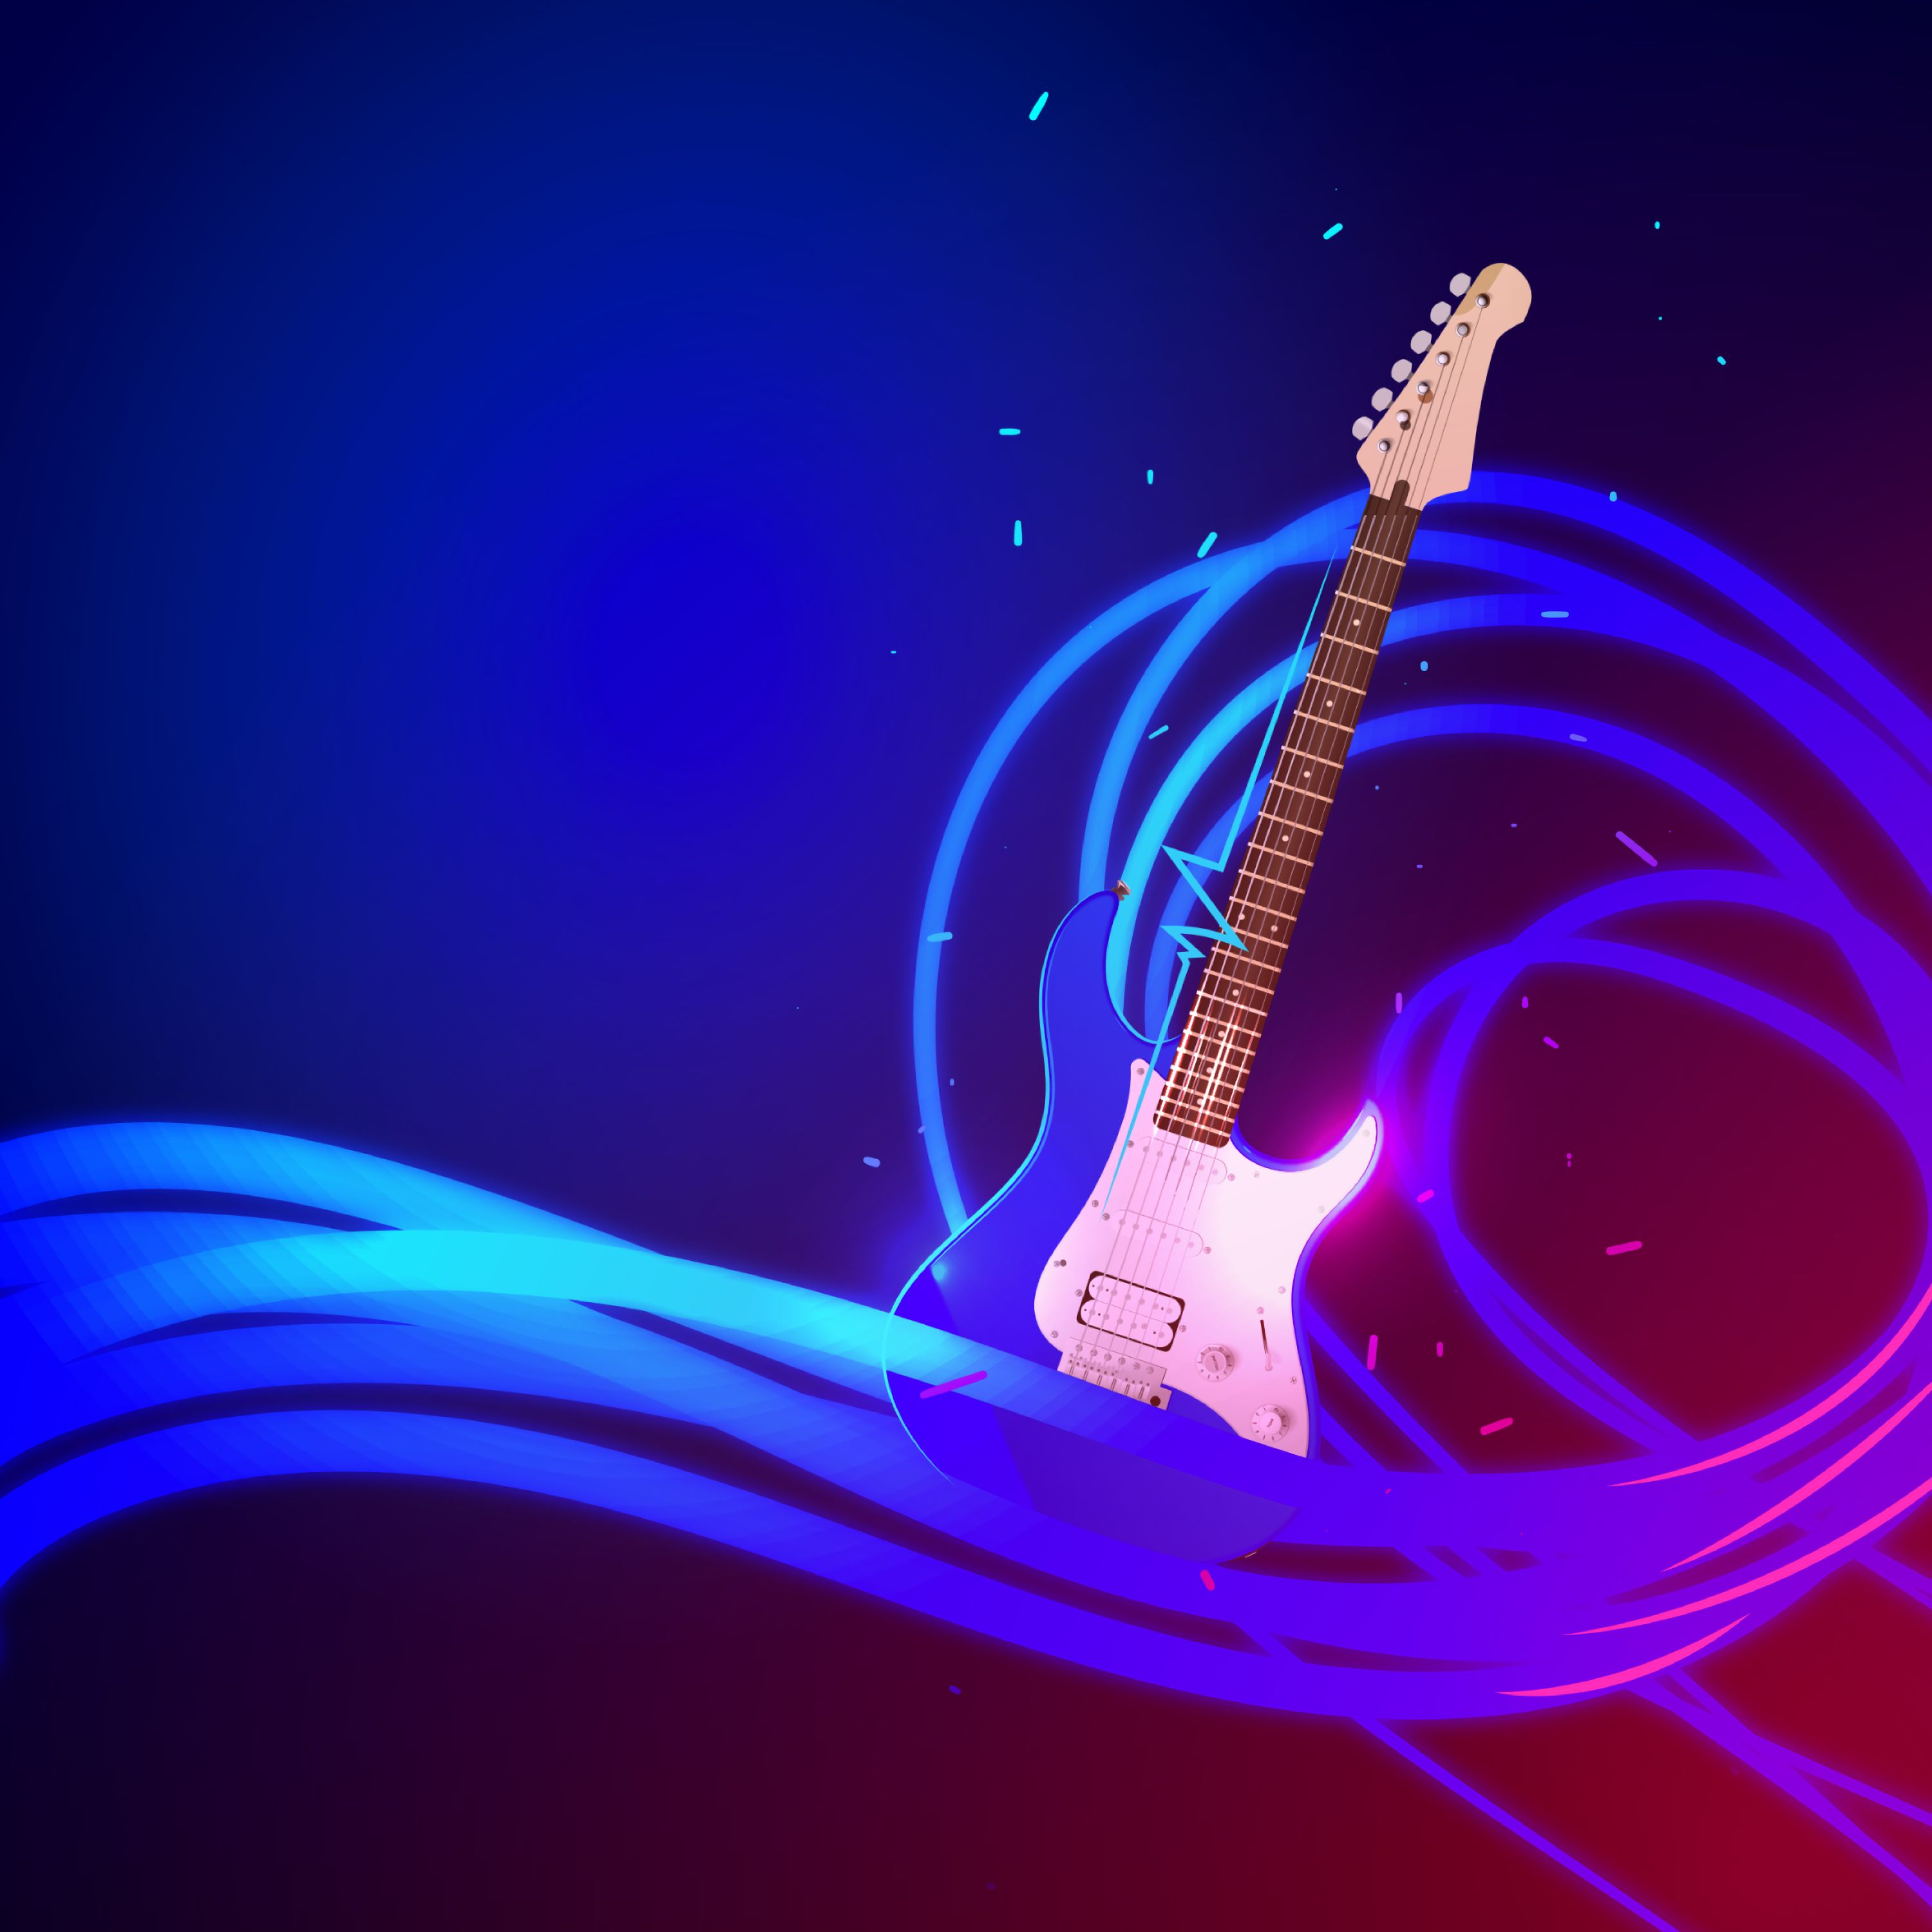 145624 download wallpaper Vector, Guitar, Art, Wavy, Music Internet, Musical Internet screensavers and pictures for free